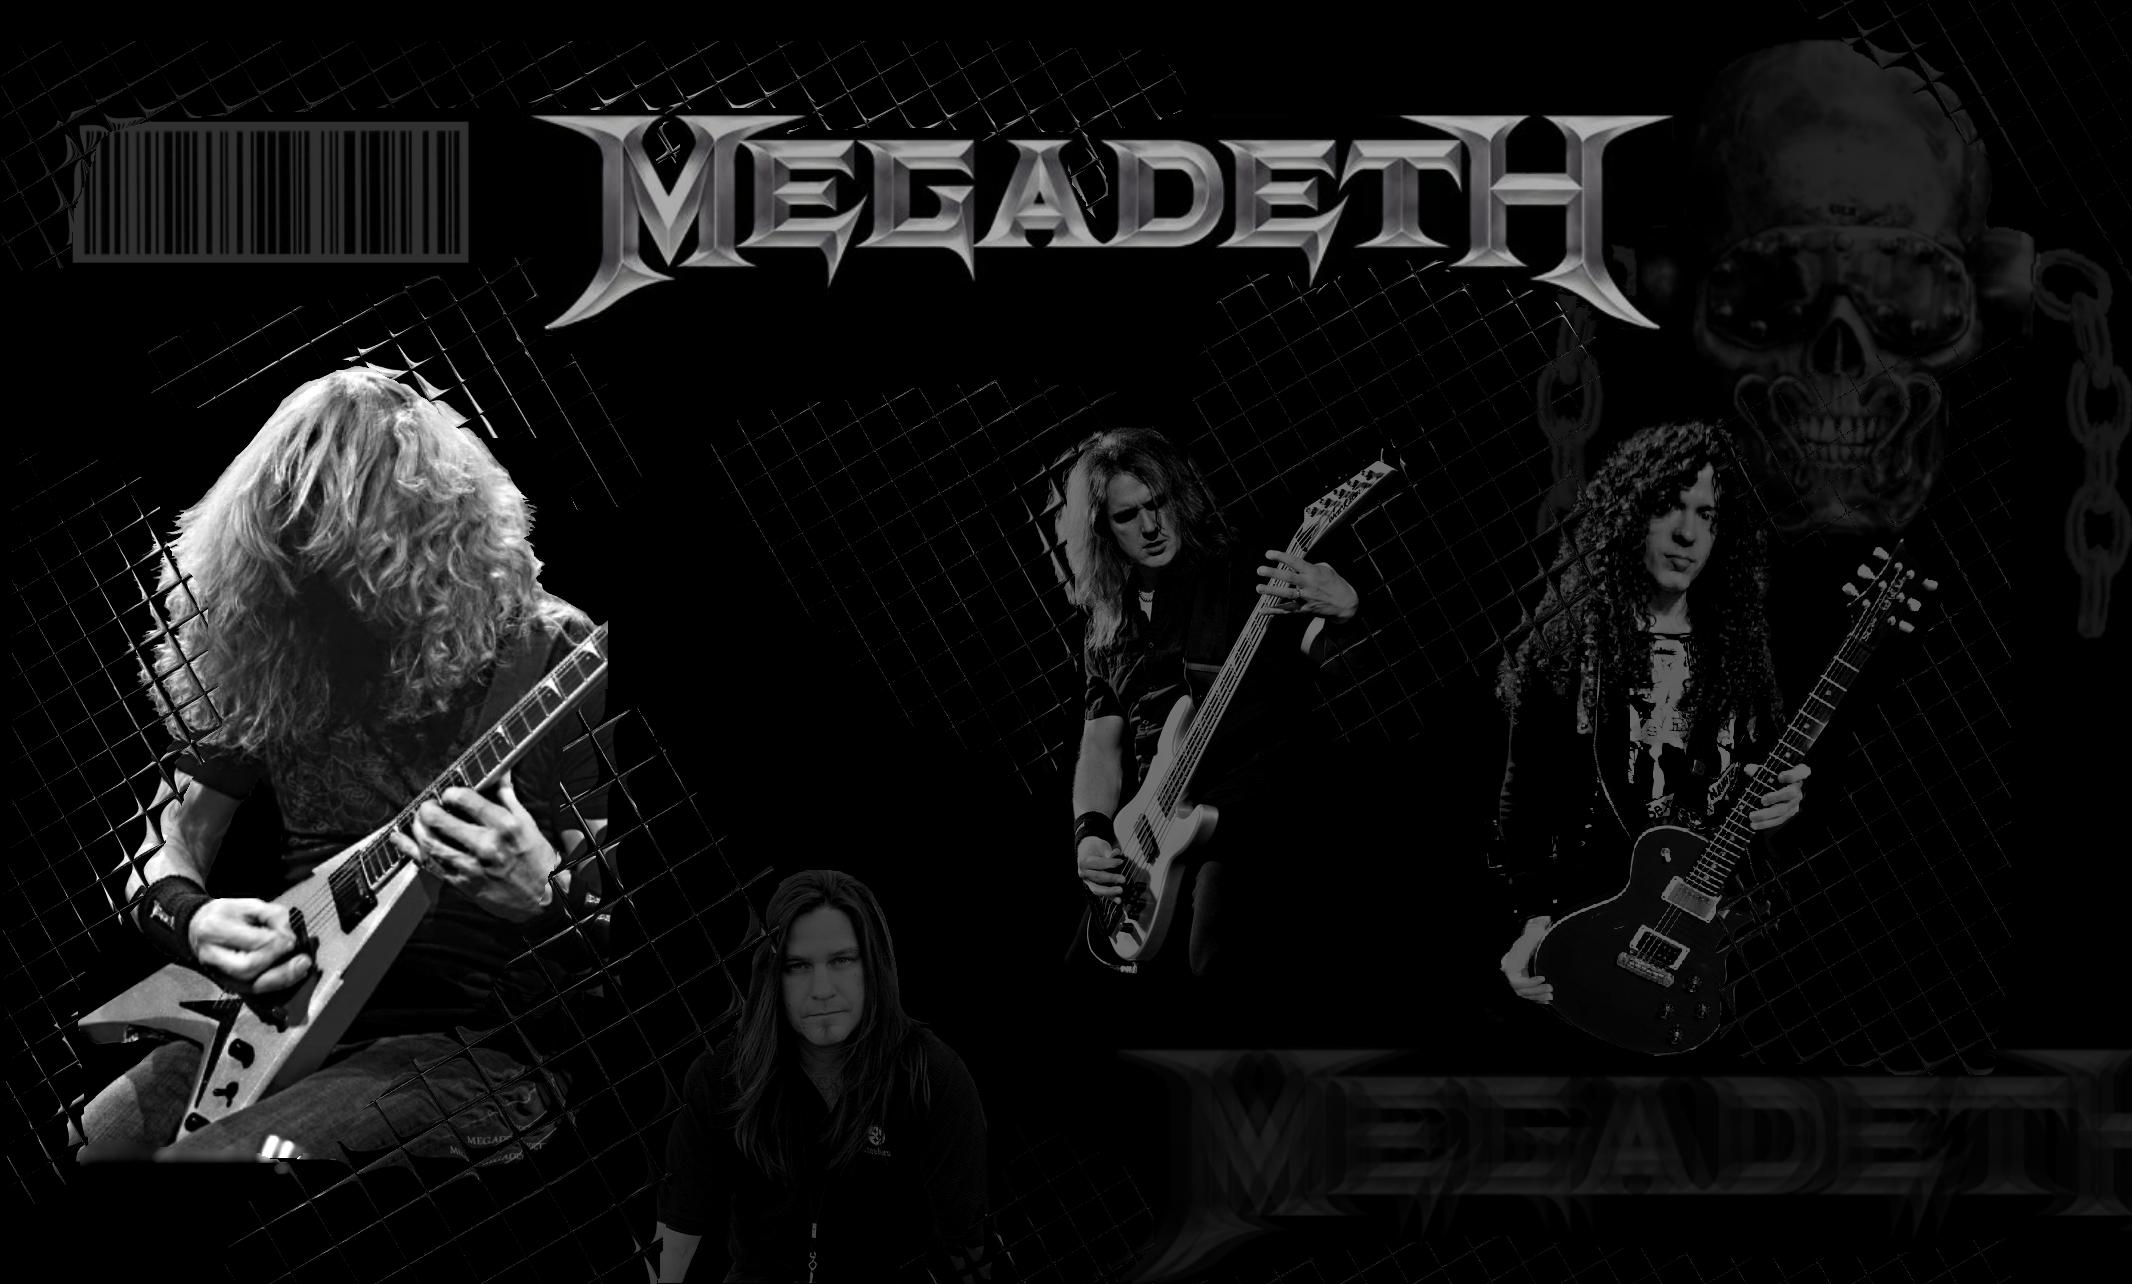 download megadeth wallpapers gallery